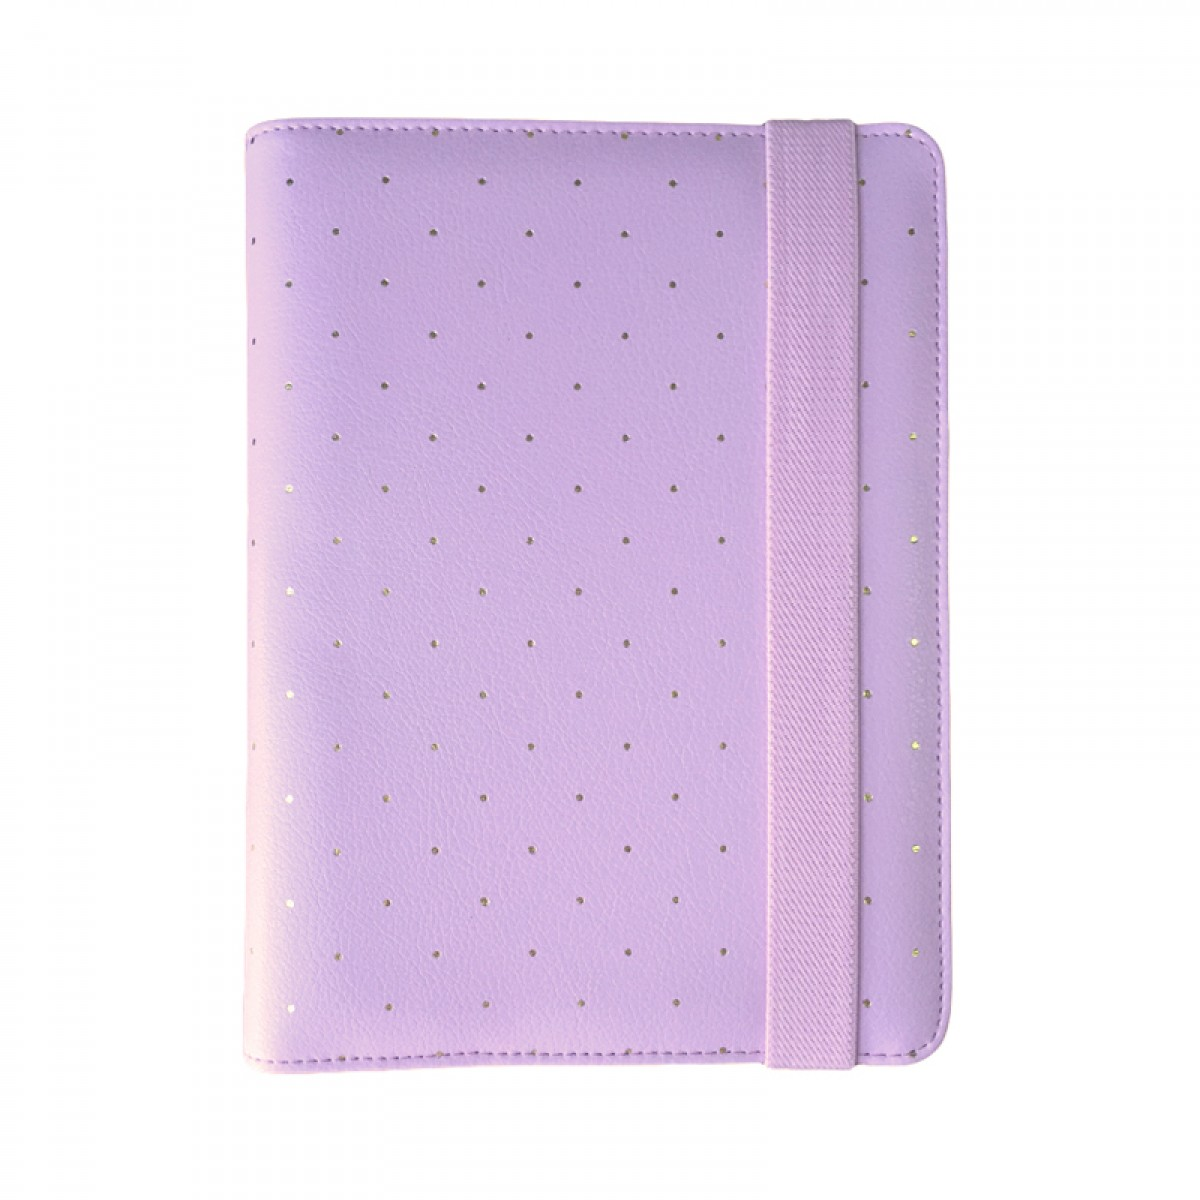 DOKIBOOK LILAC SMALL